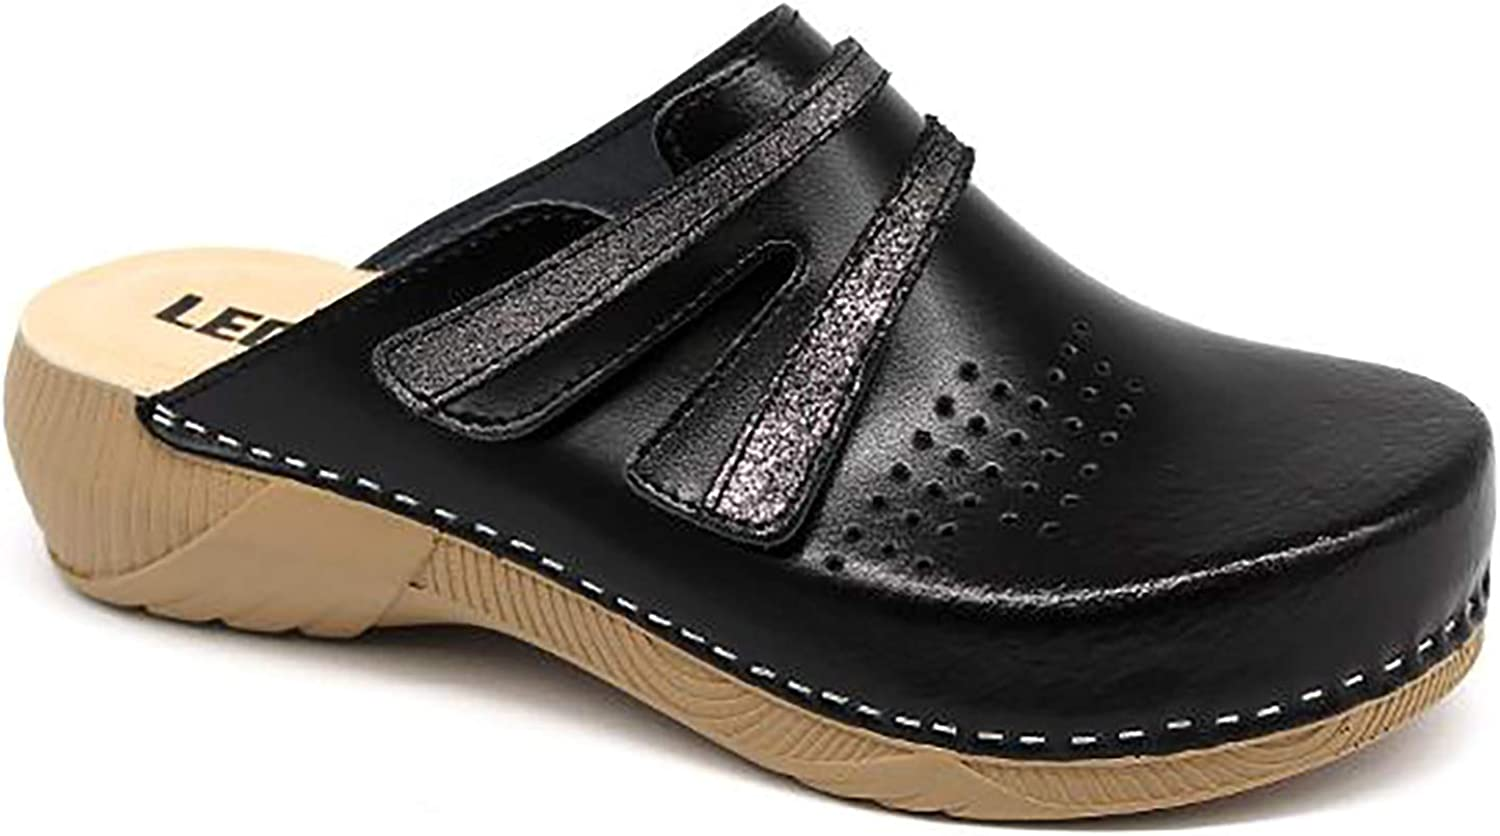 LEON 3200 Leather Slip-on Womens Ladies Mule Clogs Slippers Shoes